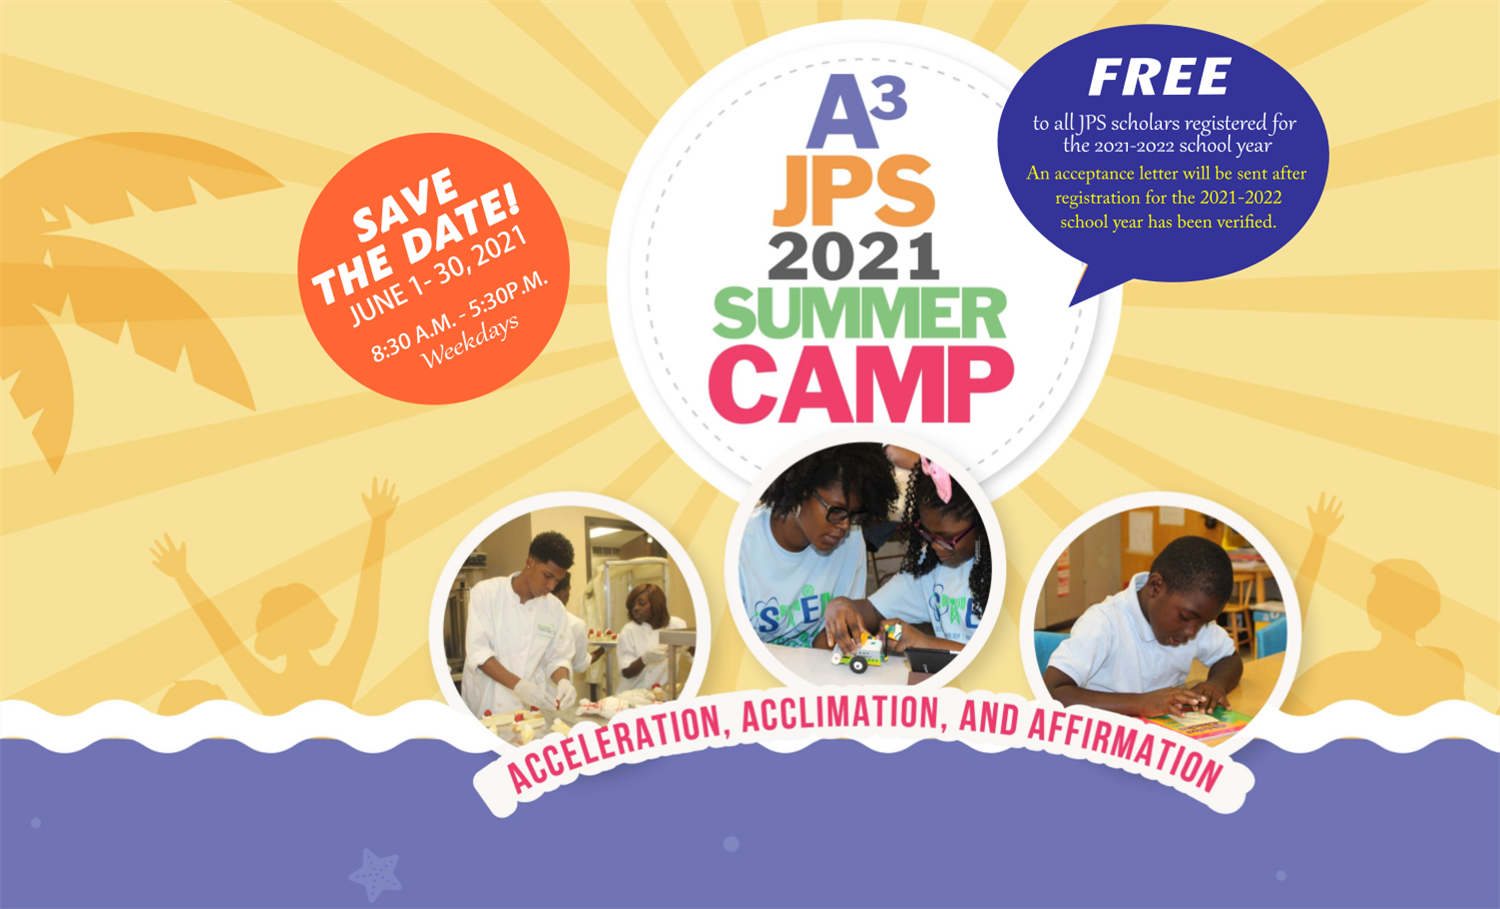 A3 JPS Summer Camp